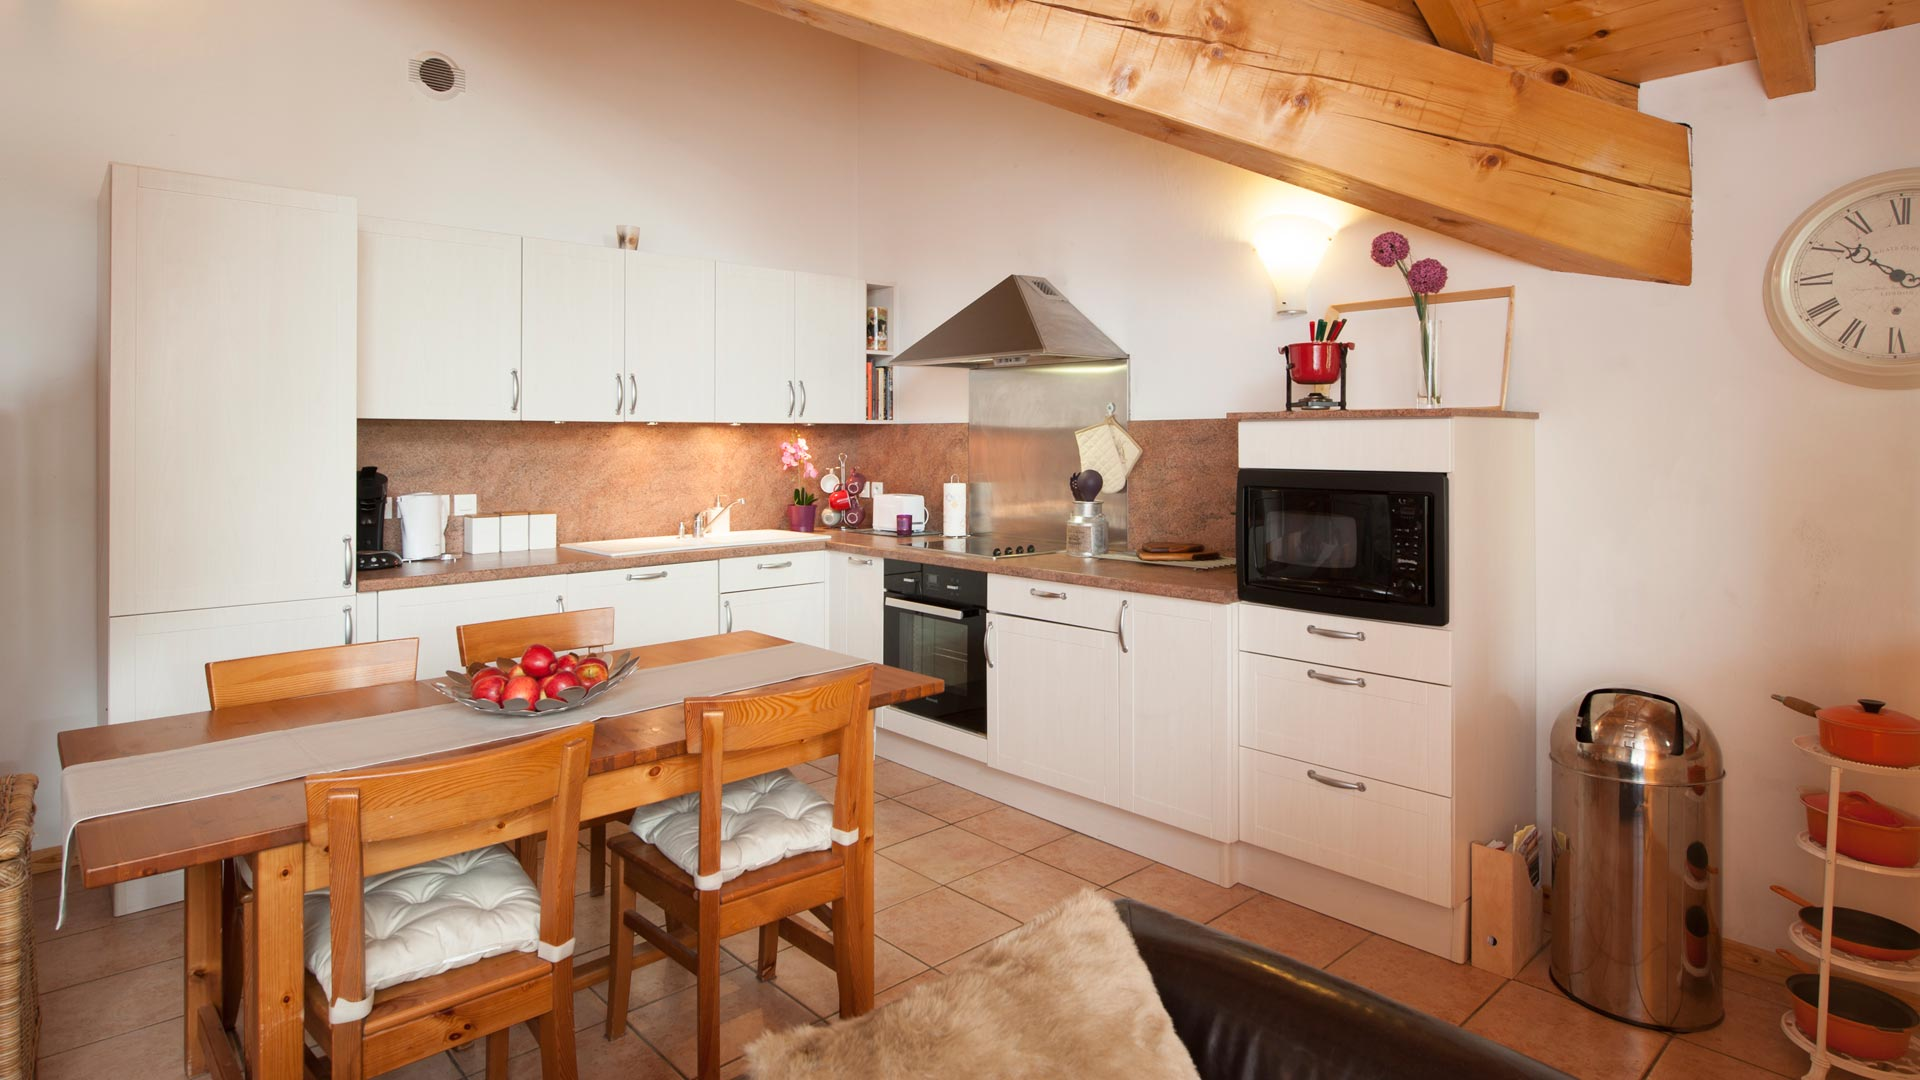 Kitchen Area in in Le Petit Paradis Apartment in Ste Foy